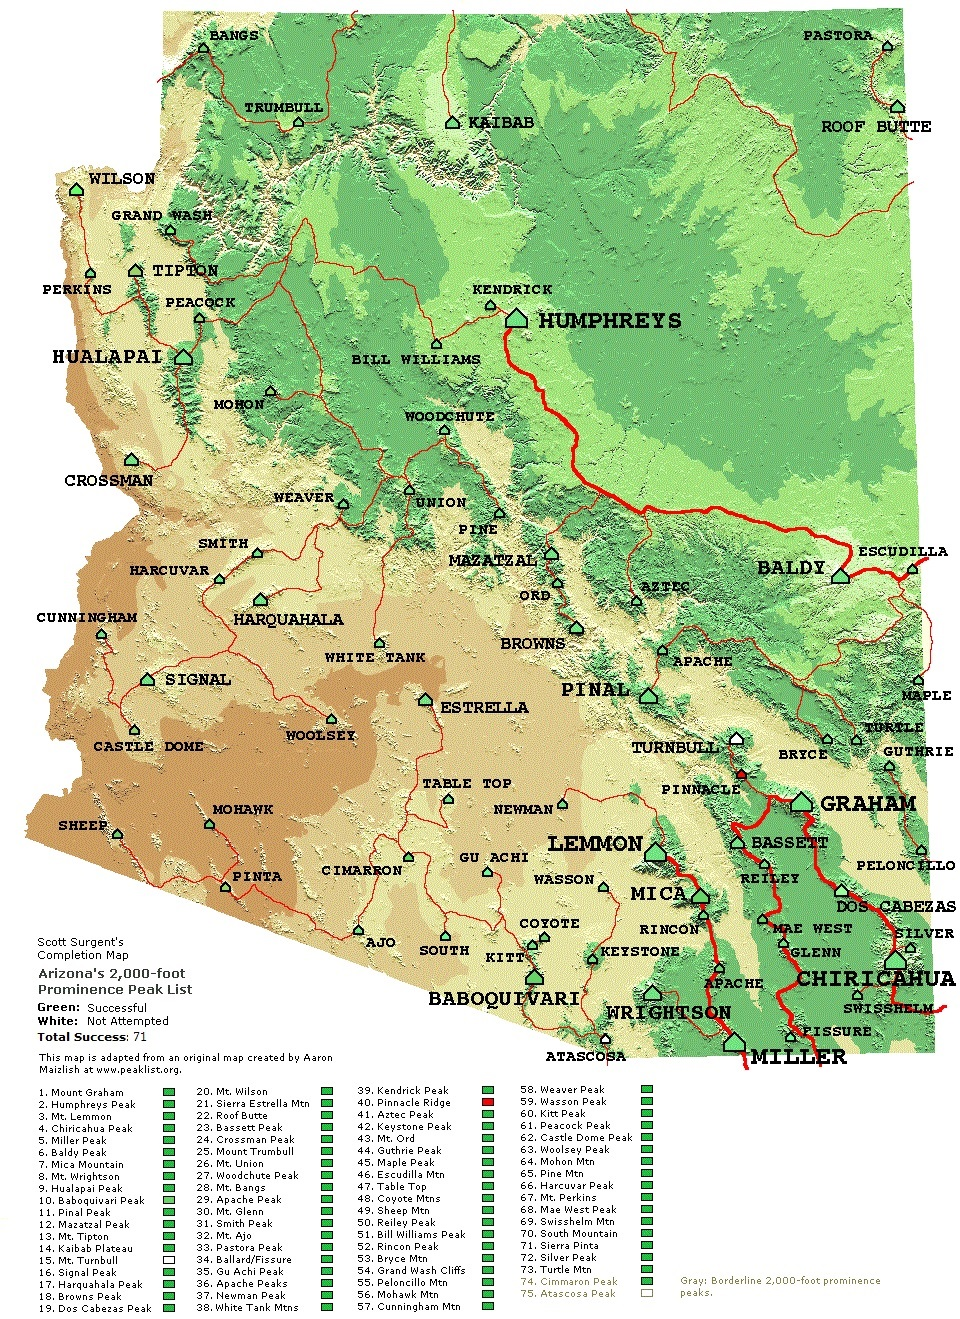 Map Of South Arizona.Arizona Peaks 1 000 Feet Of Prominence And Higher Www Surgent Net